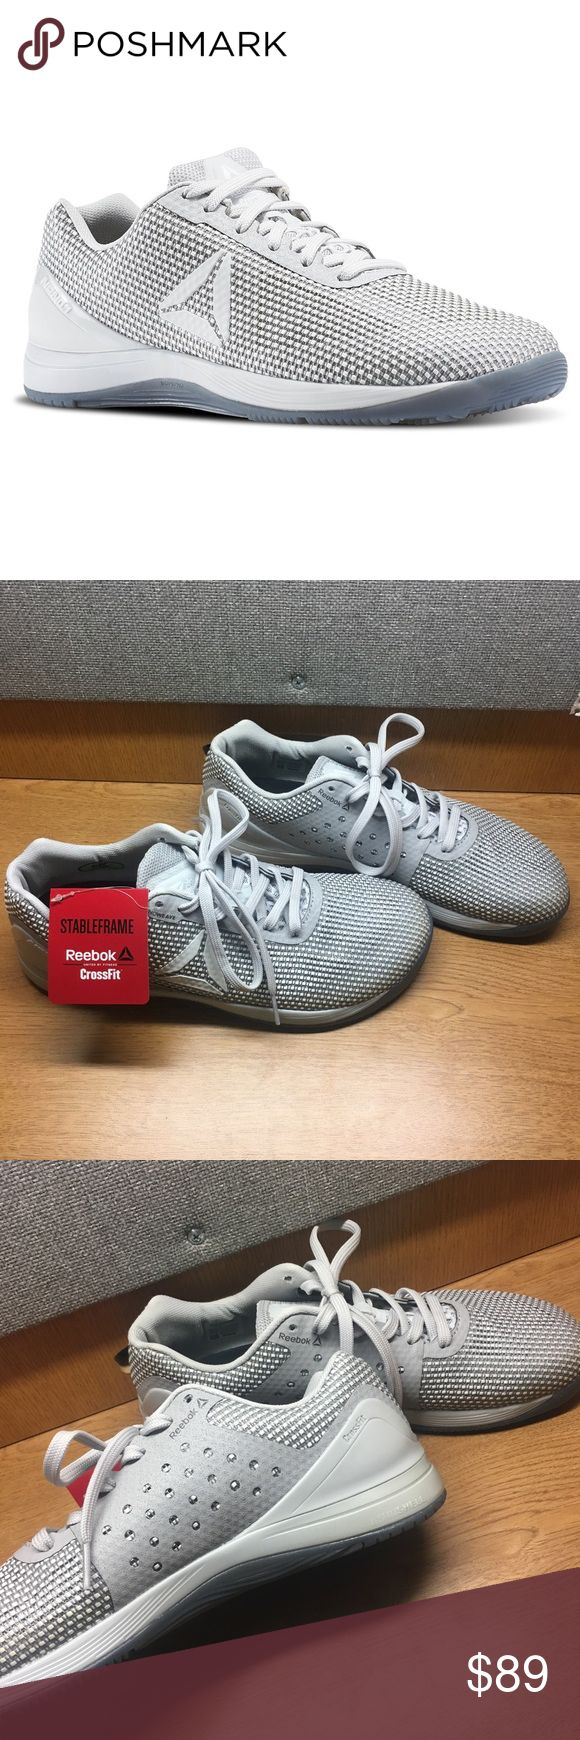 BRAND NEW! Reebok CrossFit nano 7.0 Brand new with tags! Size 11! Feel feee to make an offer! Reebok Shoes Athletic Shoes